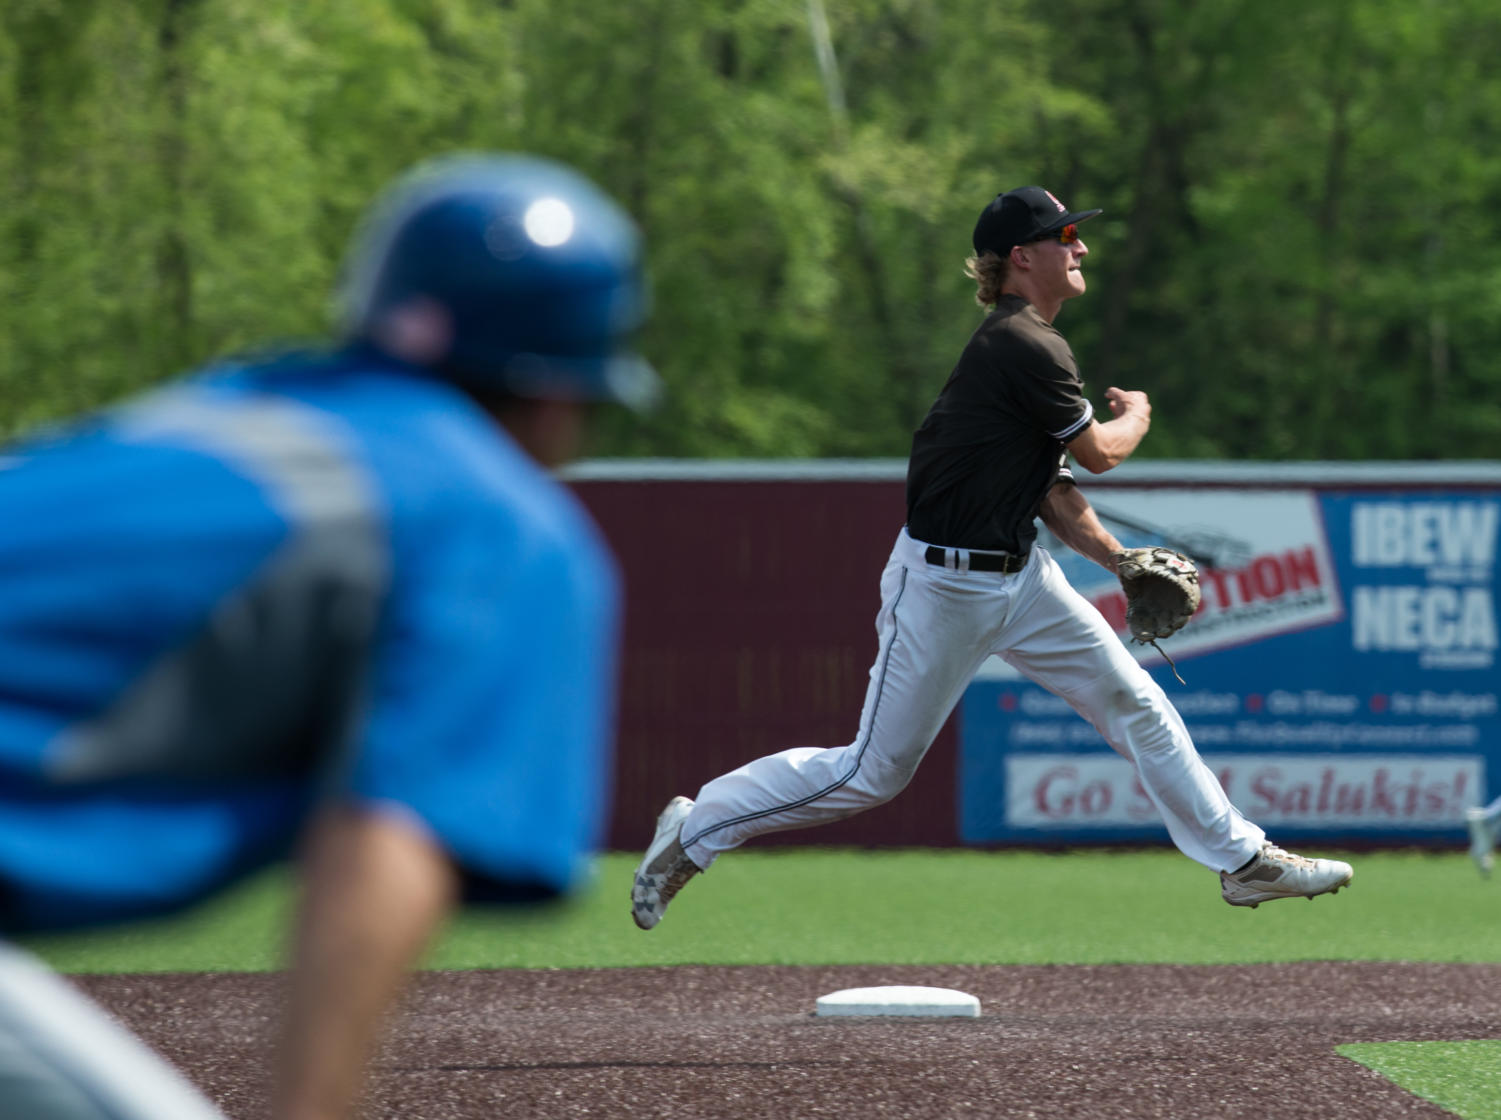 Senior infielder Connor Kopach makes a running throw to first base Sunday, May 6, 2018, during the Salukis' 11-3 loss against the Indiana State Sycamores at Itchy Jones Stadium. (Cameron Hupp   @CHupp04)